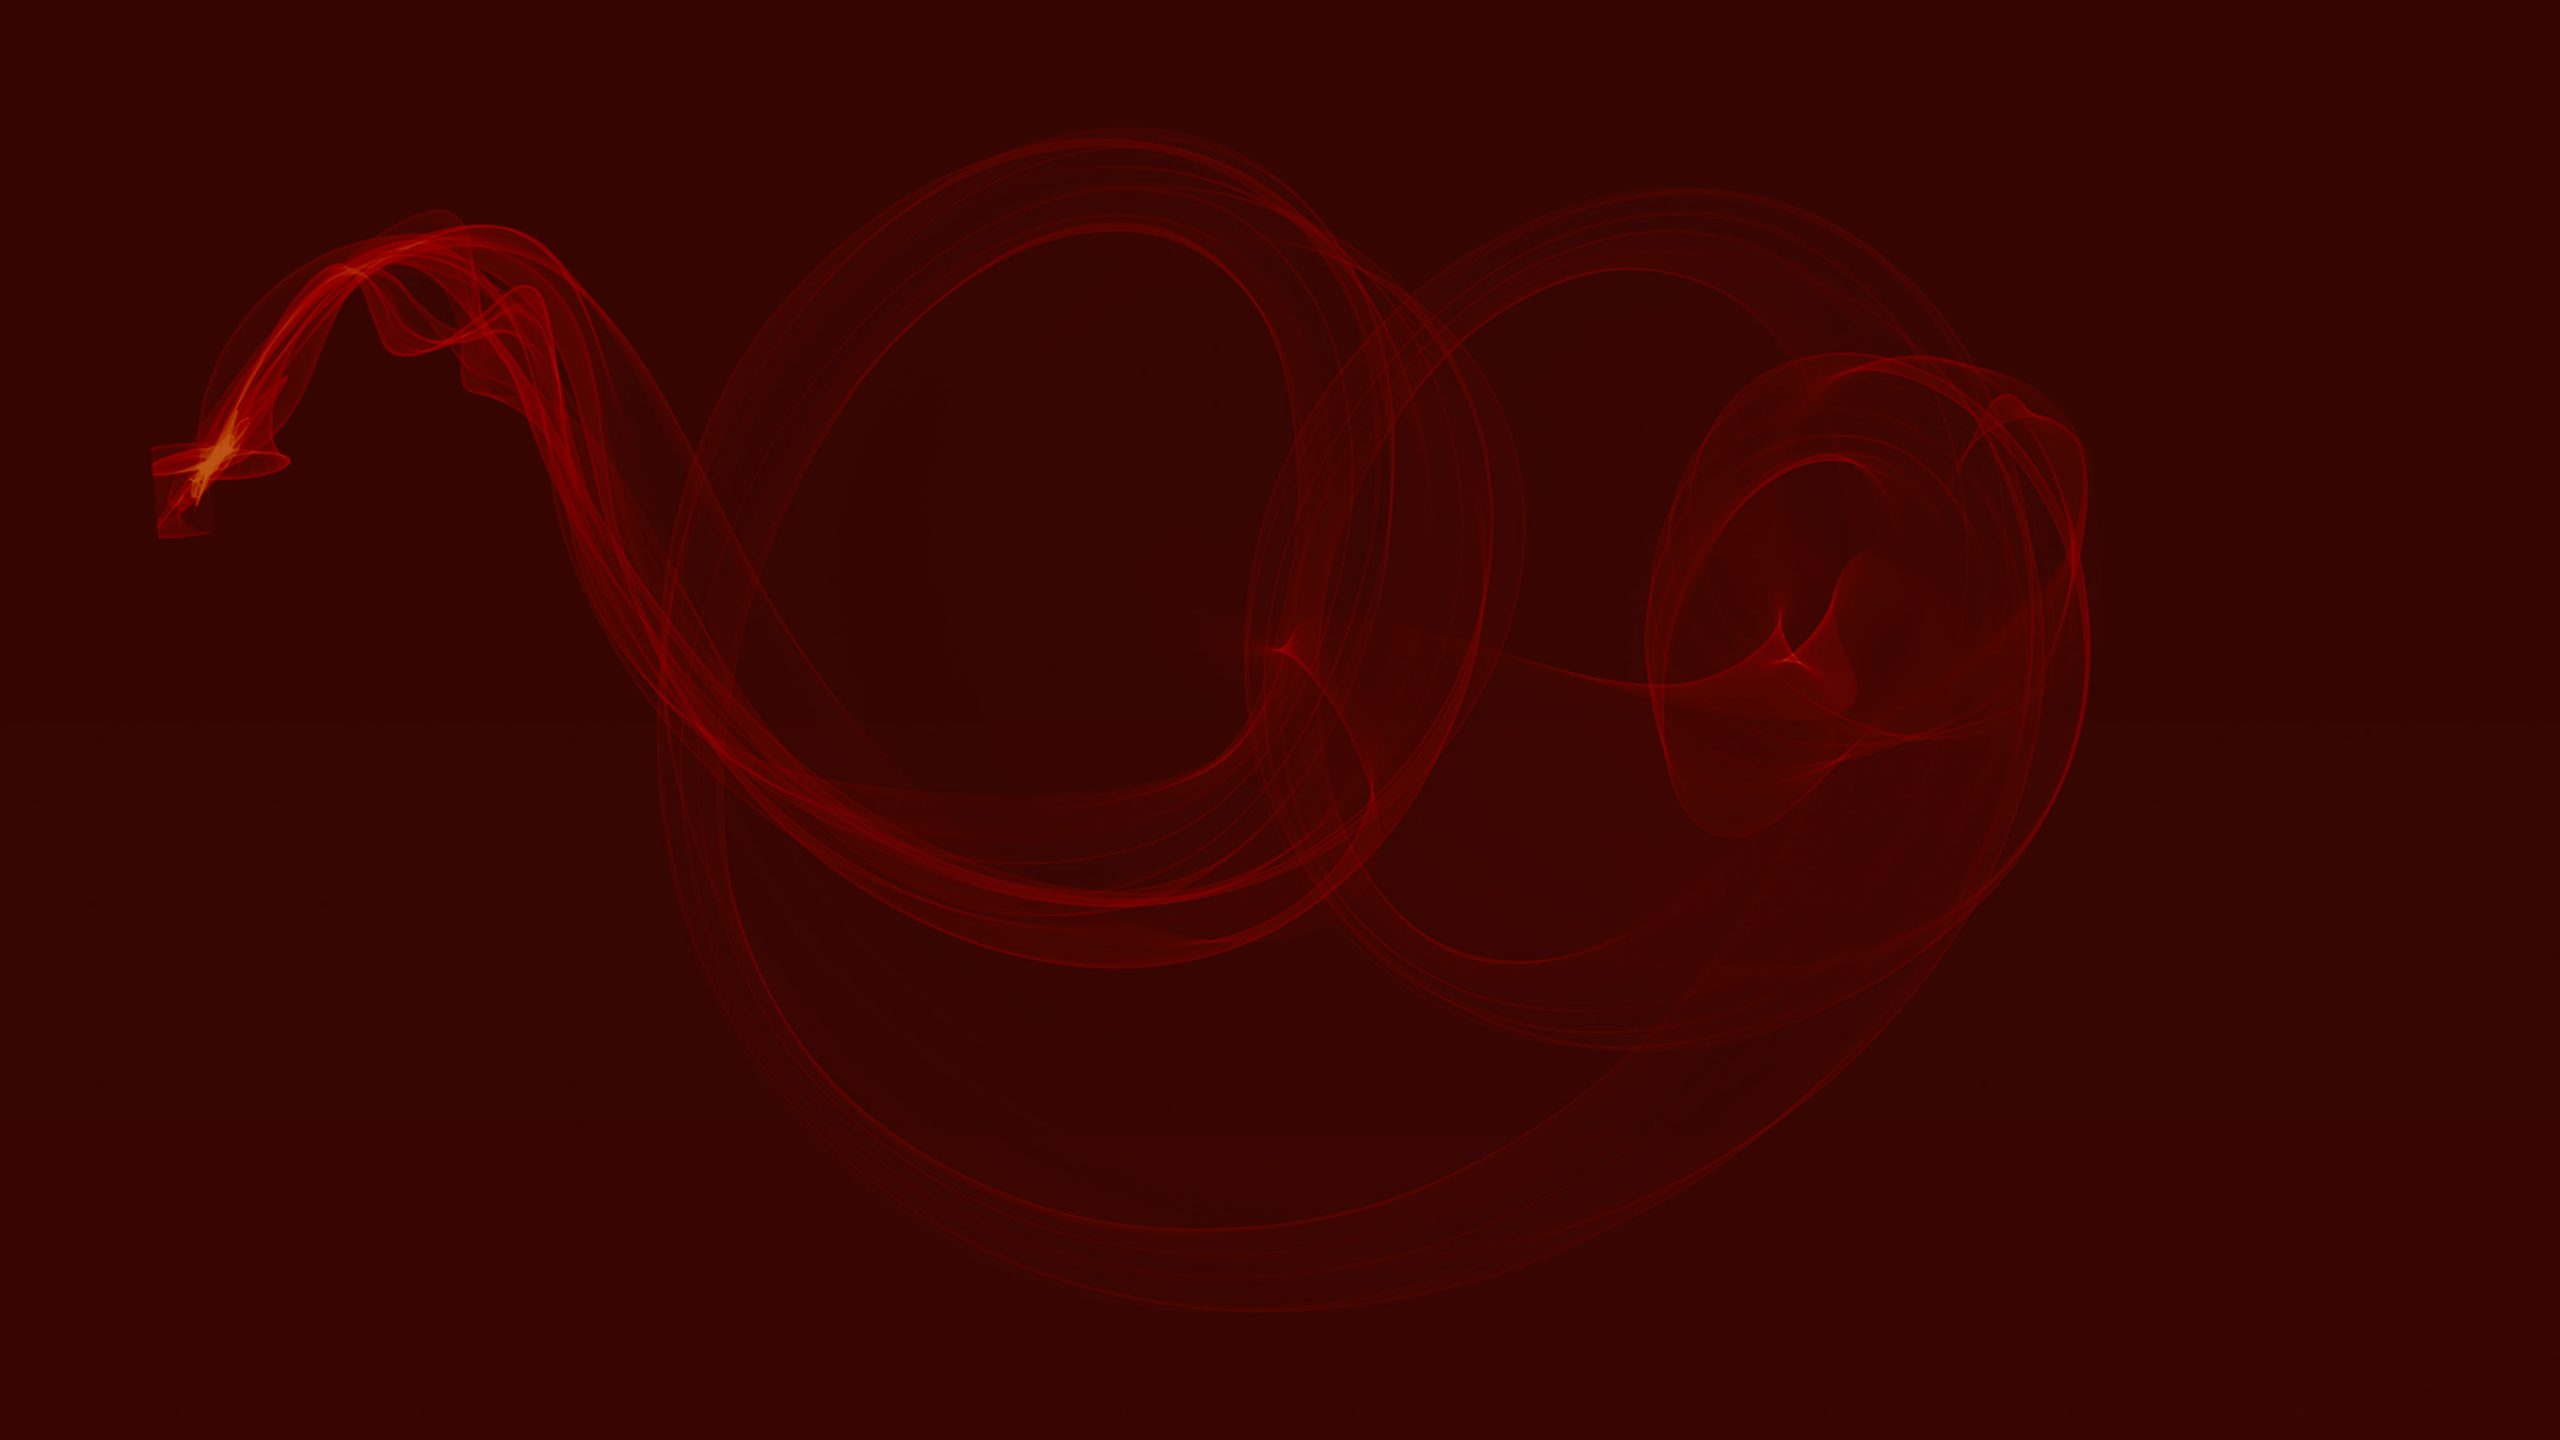 Red and dark wallpaper